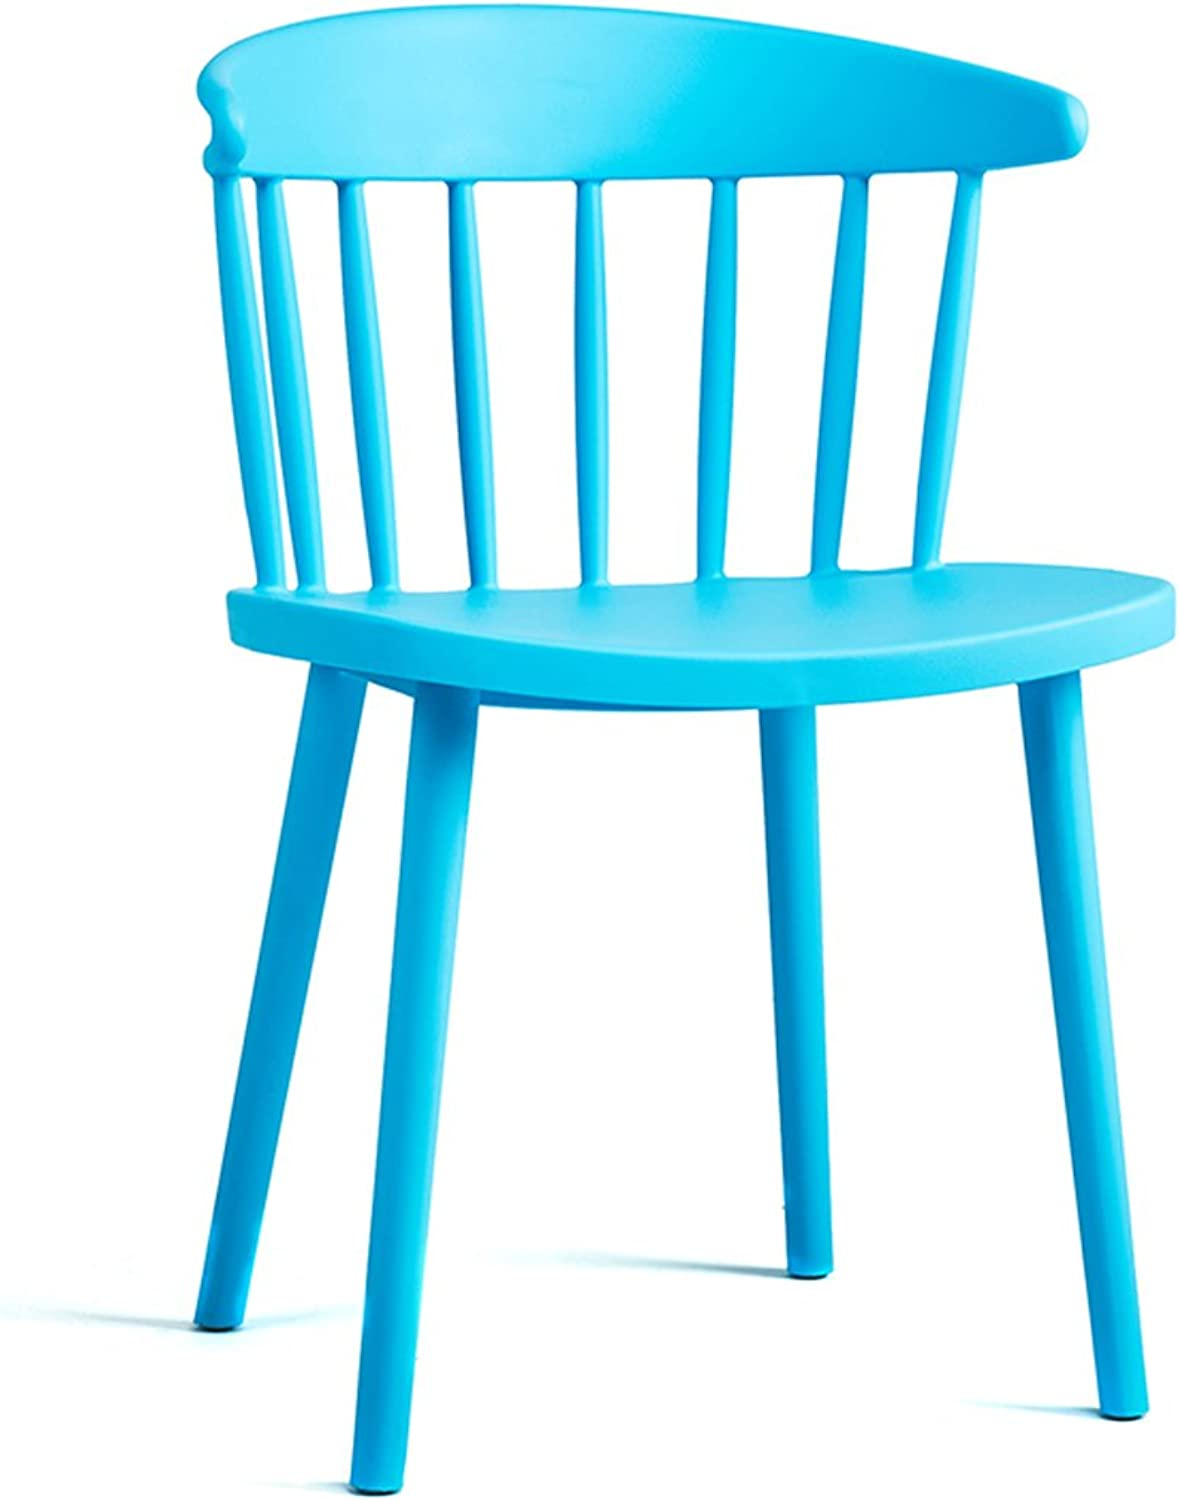 LRW Modern Leisure Chair, Home Plastic Backrest, Nordic Chair, Milk Tea Shop Chair (color   Light bluee)